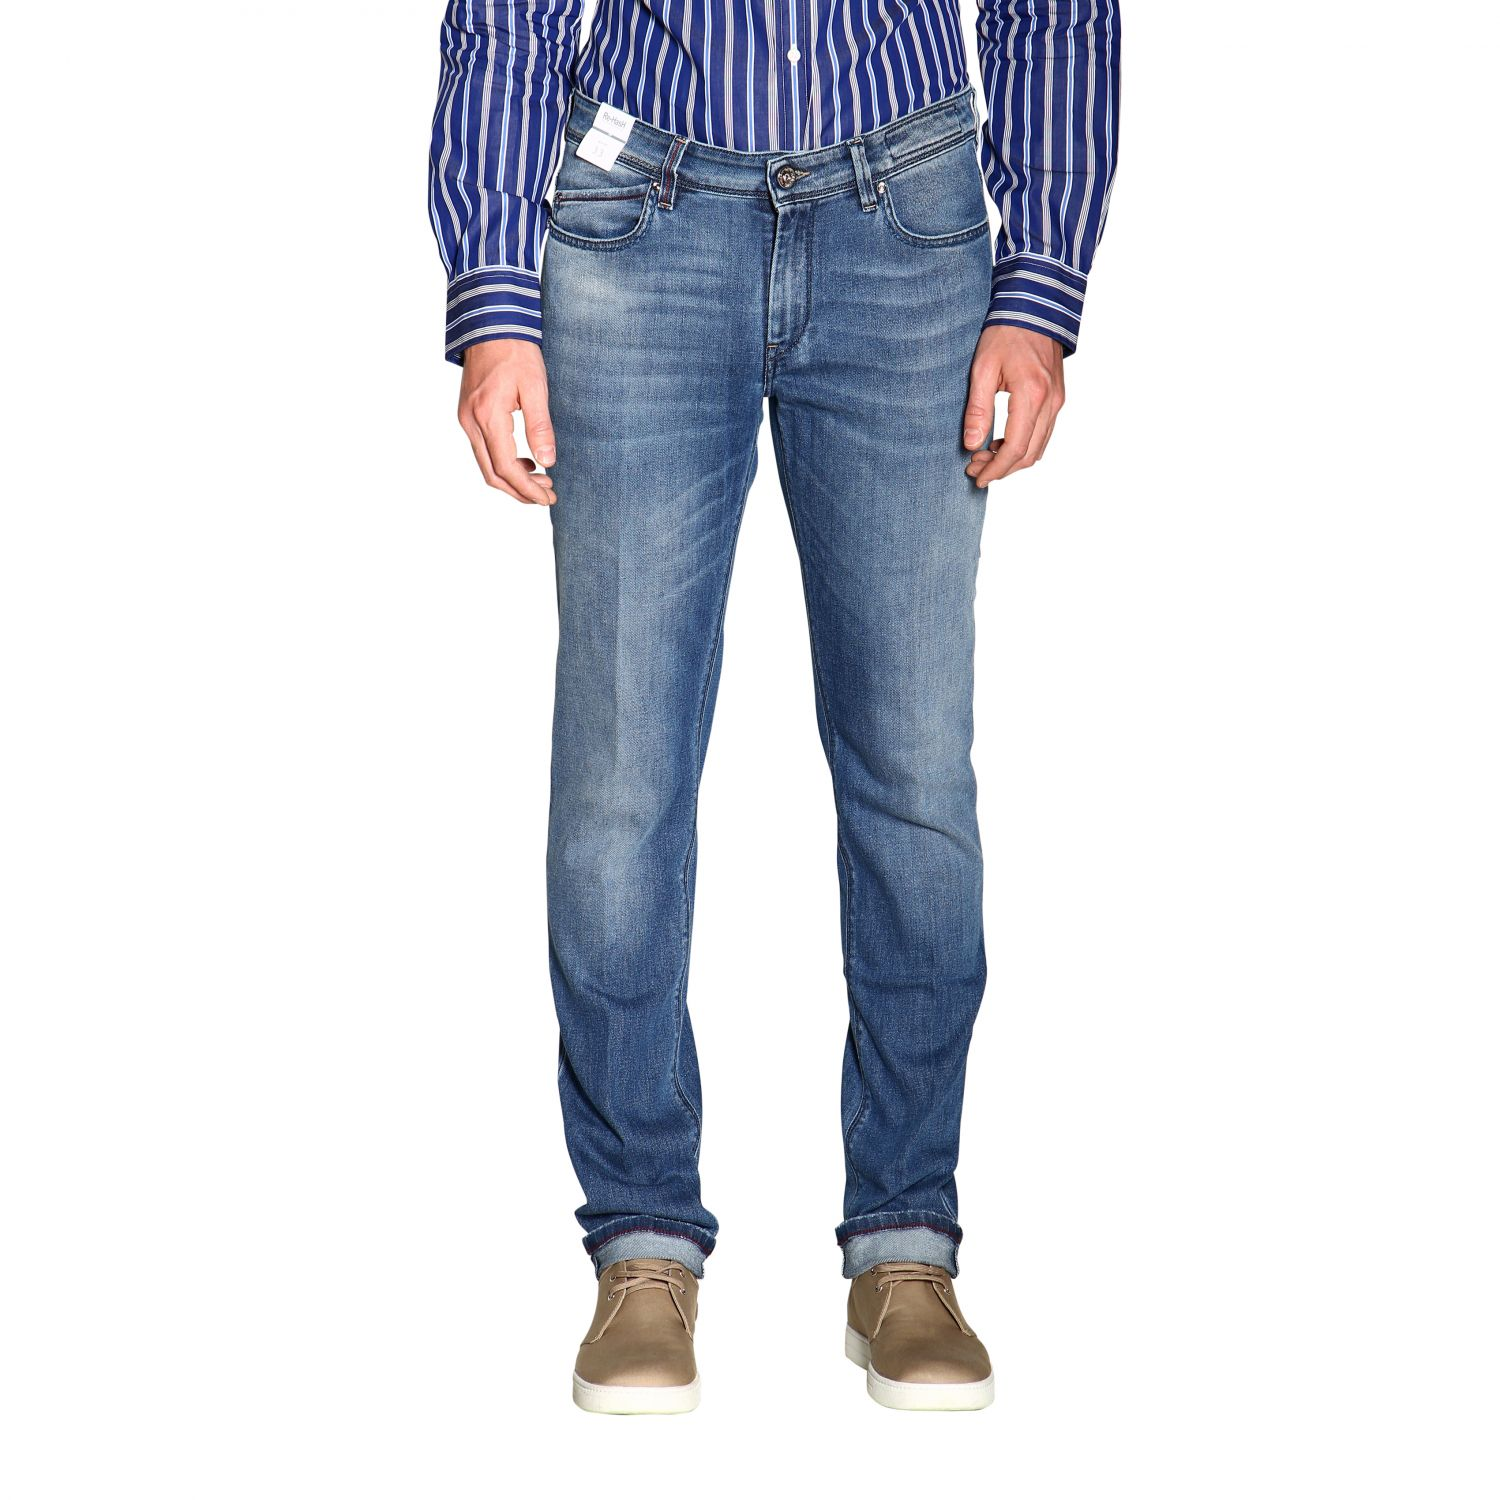 Jeans hombre Re-hash azul oscuro 1